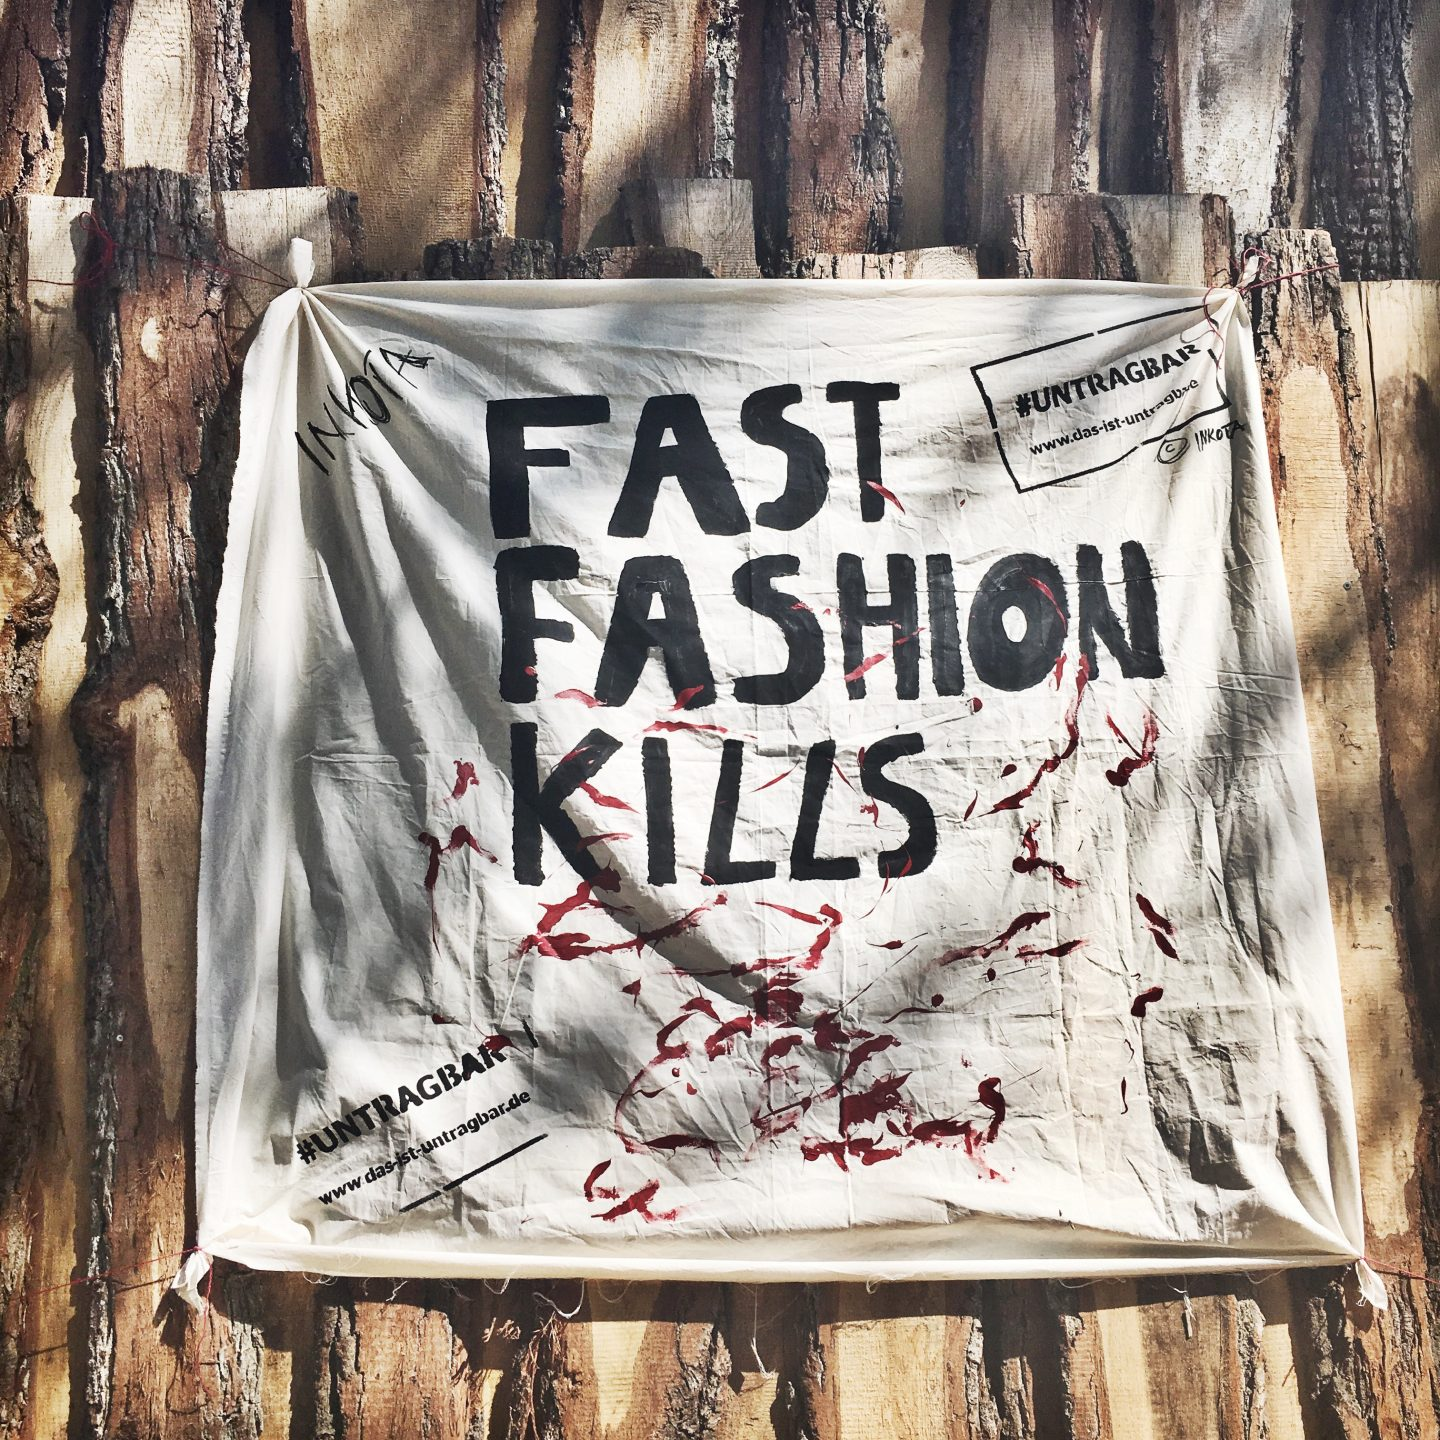 3 years without fast fashion